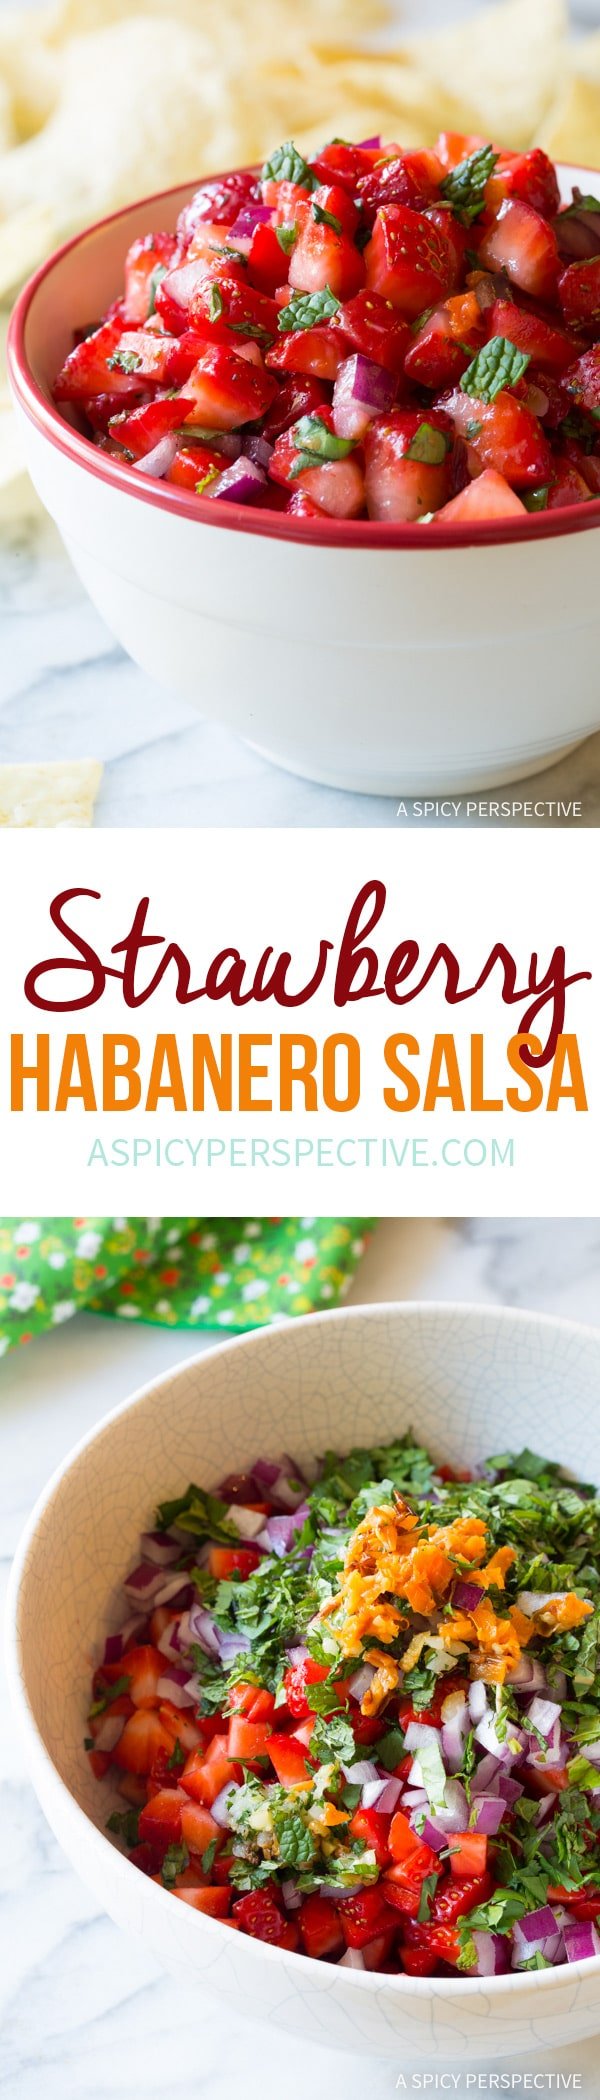 Sweet and Smoky Strawberry Habanero Salsa Recipe